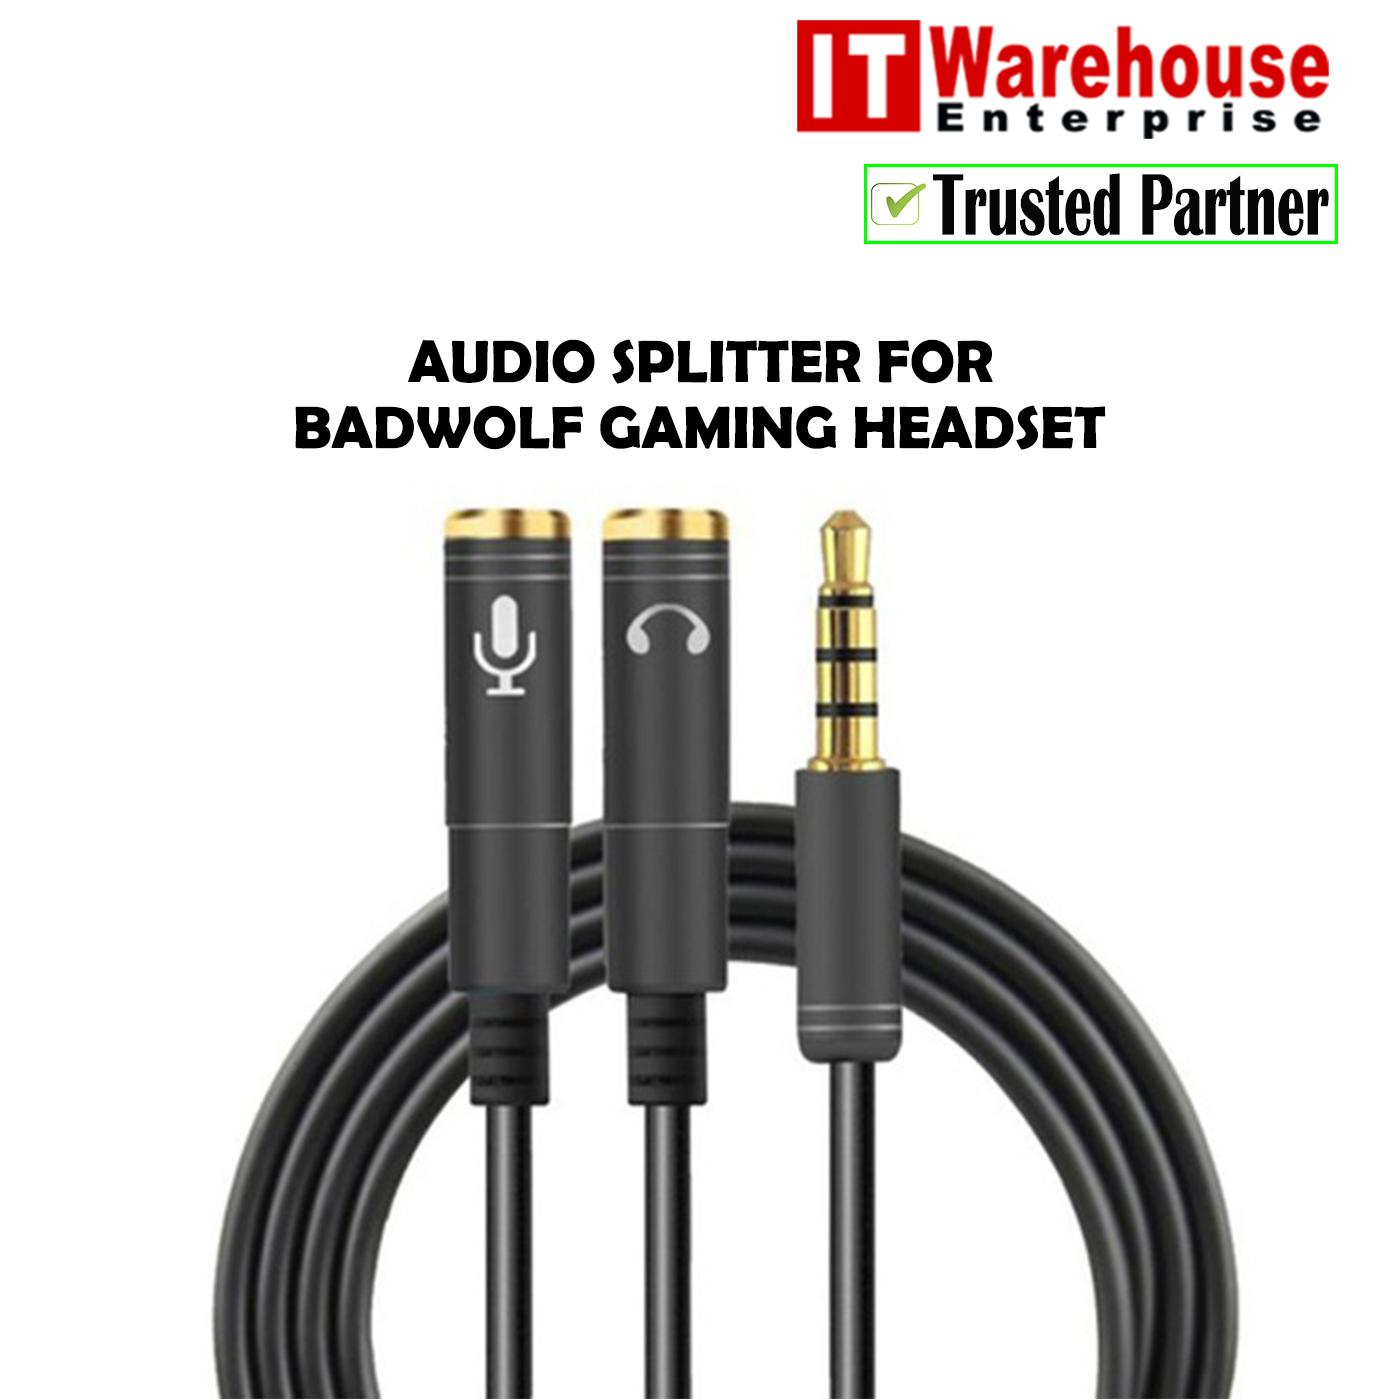 Badwolf Premium Audio Splitter 3.5mm Male To 2 Port 3.5mm Female Audio Stereo Y Splitter Cable Adapter For Earphone Headphone Headset And Microphone (black) For Badwolf Gaming Headset By It Warehouse Enterprise.